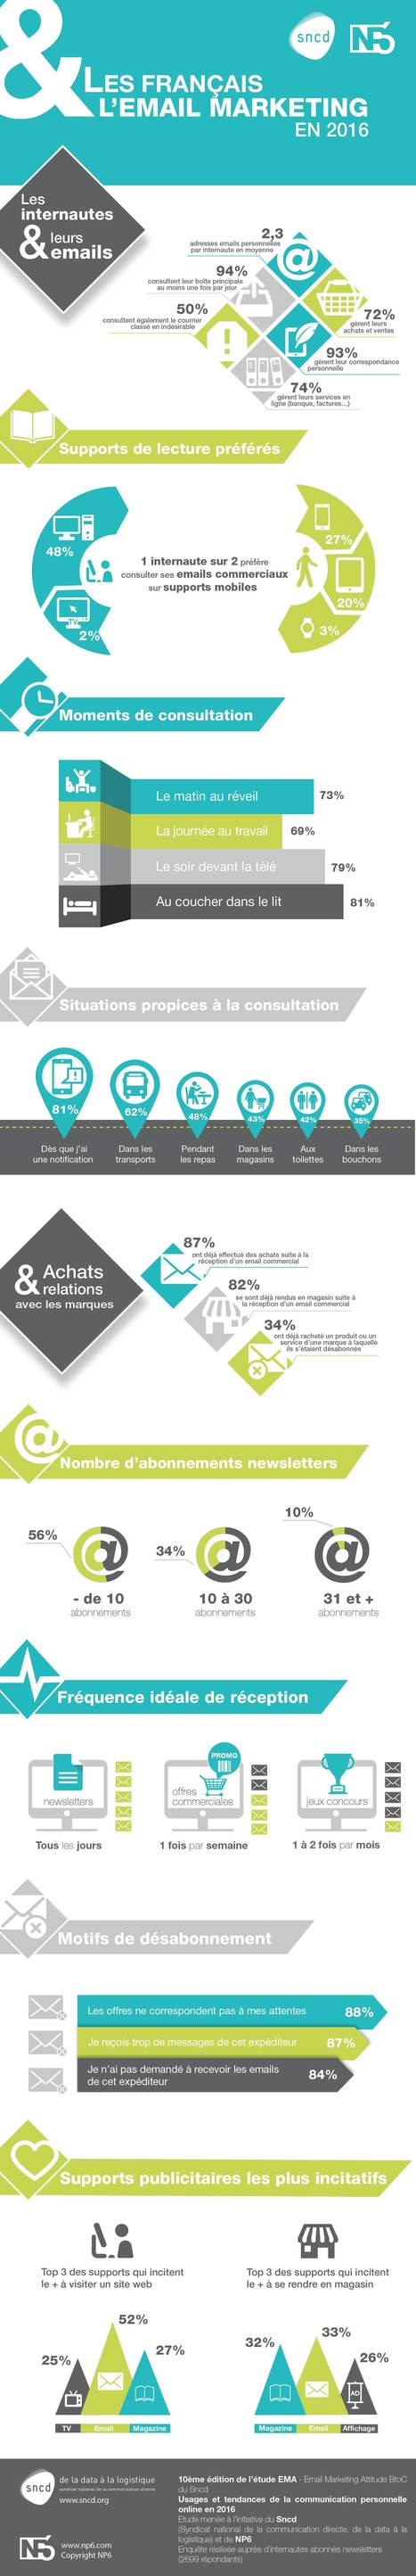 [Infographie] Les Français et leurs emails  | Marketing innovations | Scoop.it